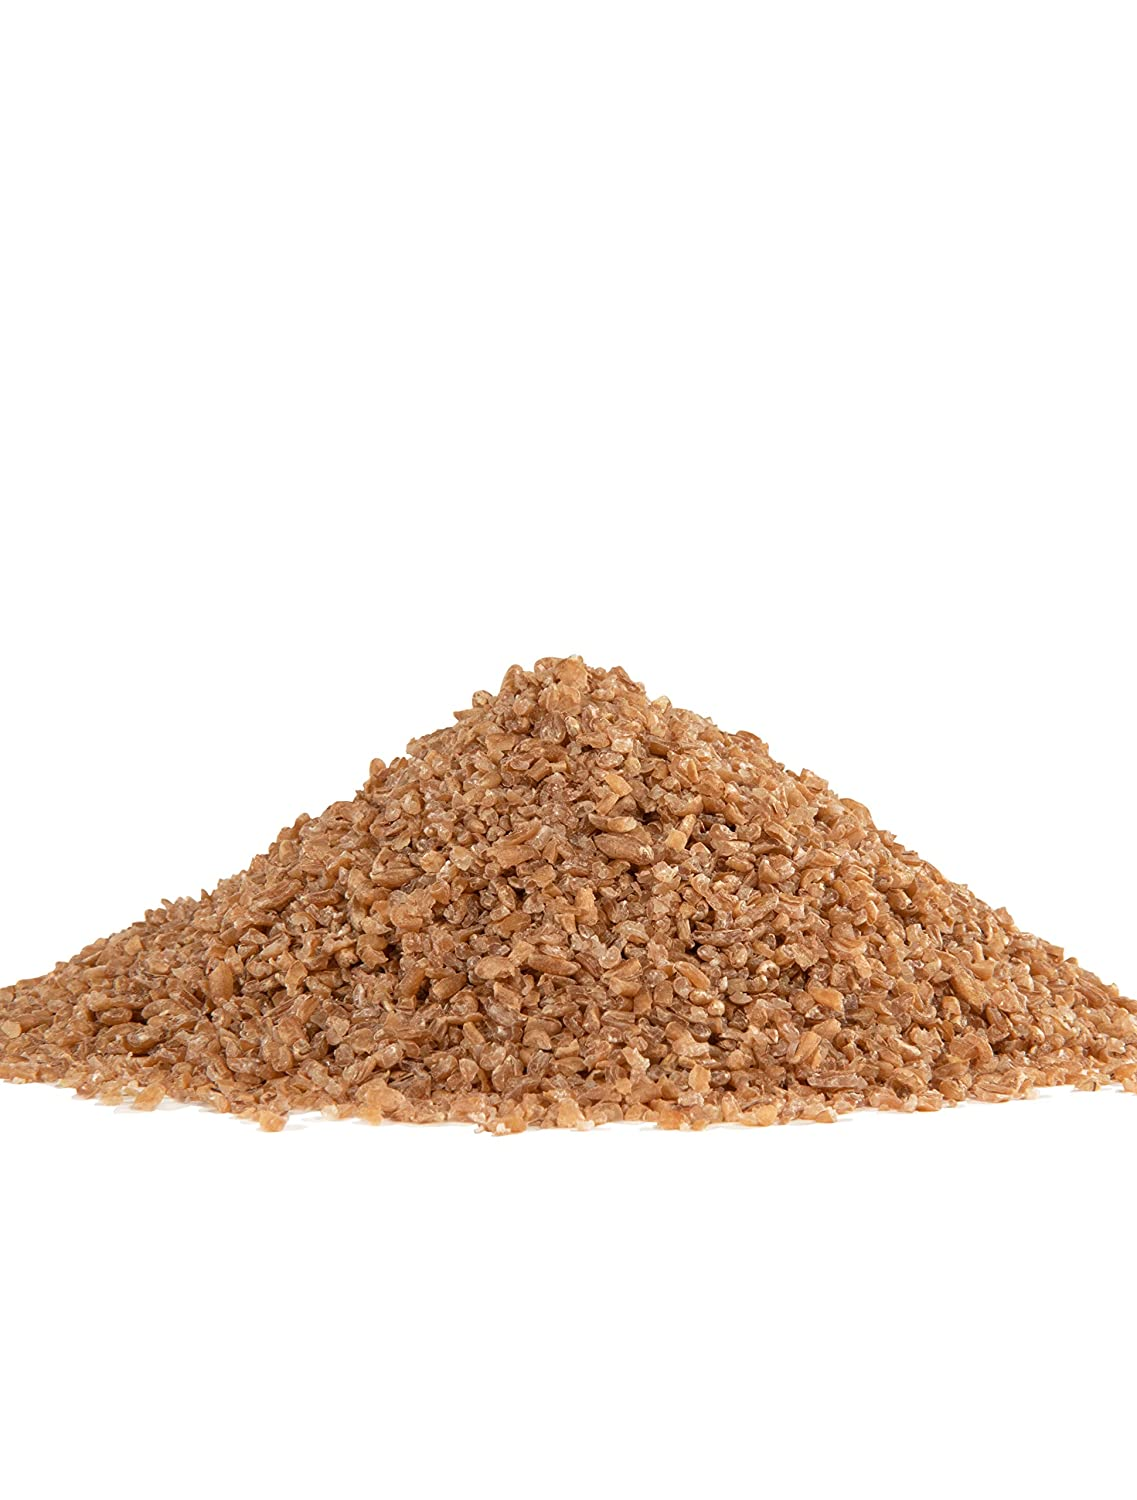 Bobs Red Mill Bulgur rojo resellable: Amazon.com: Grocery ...